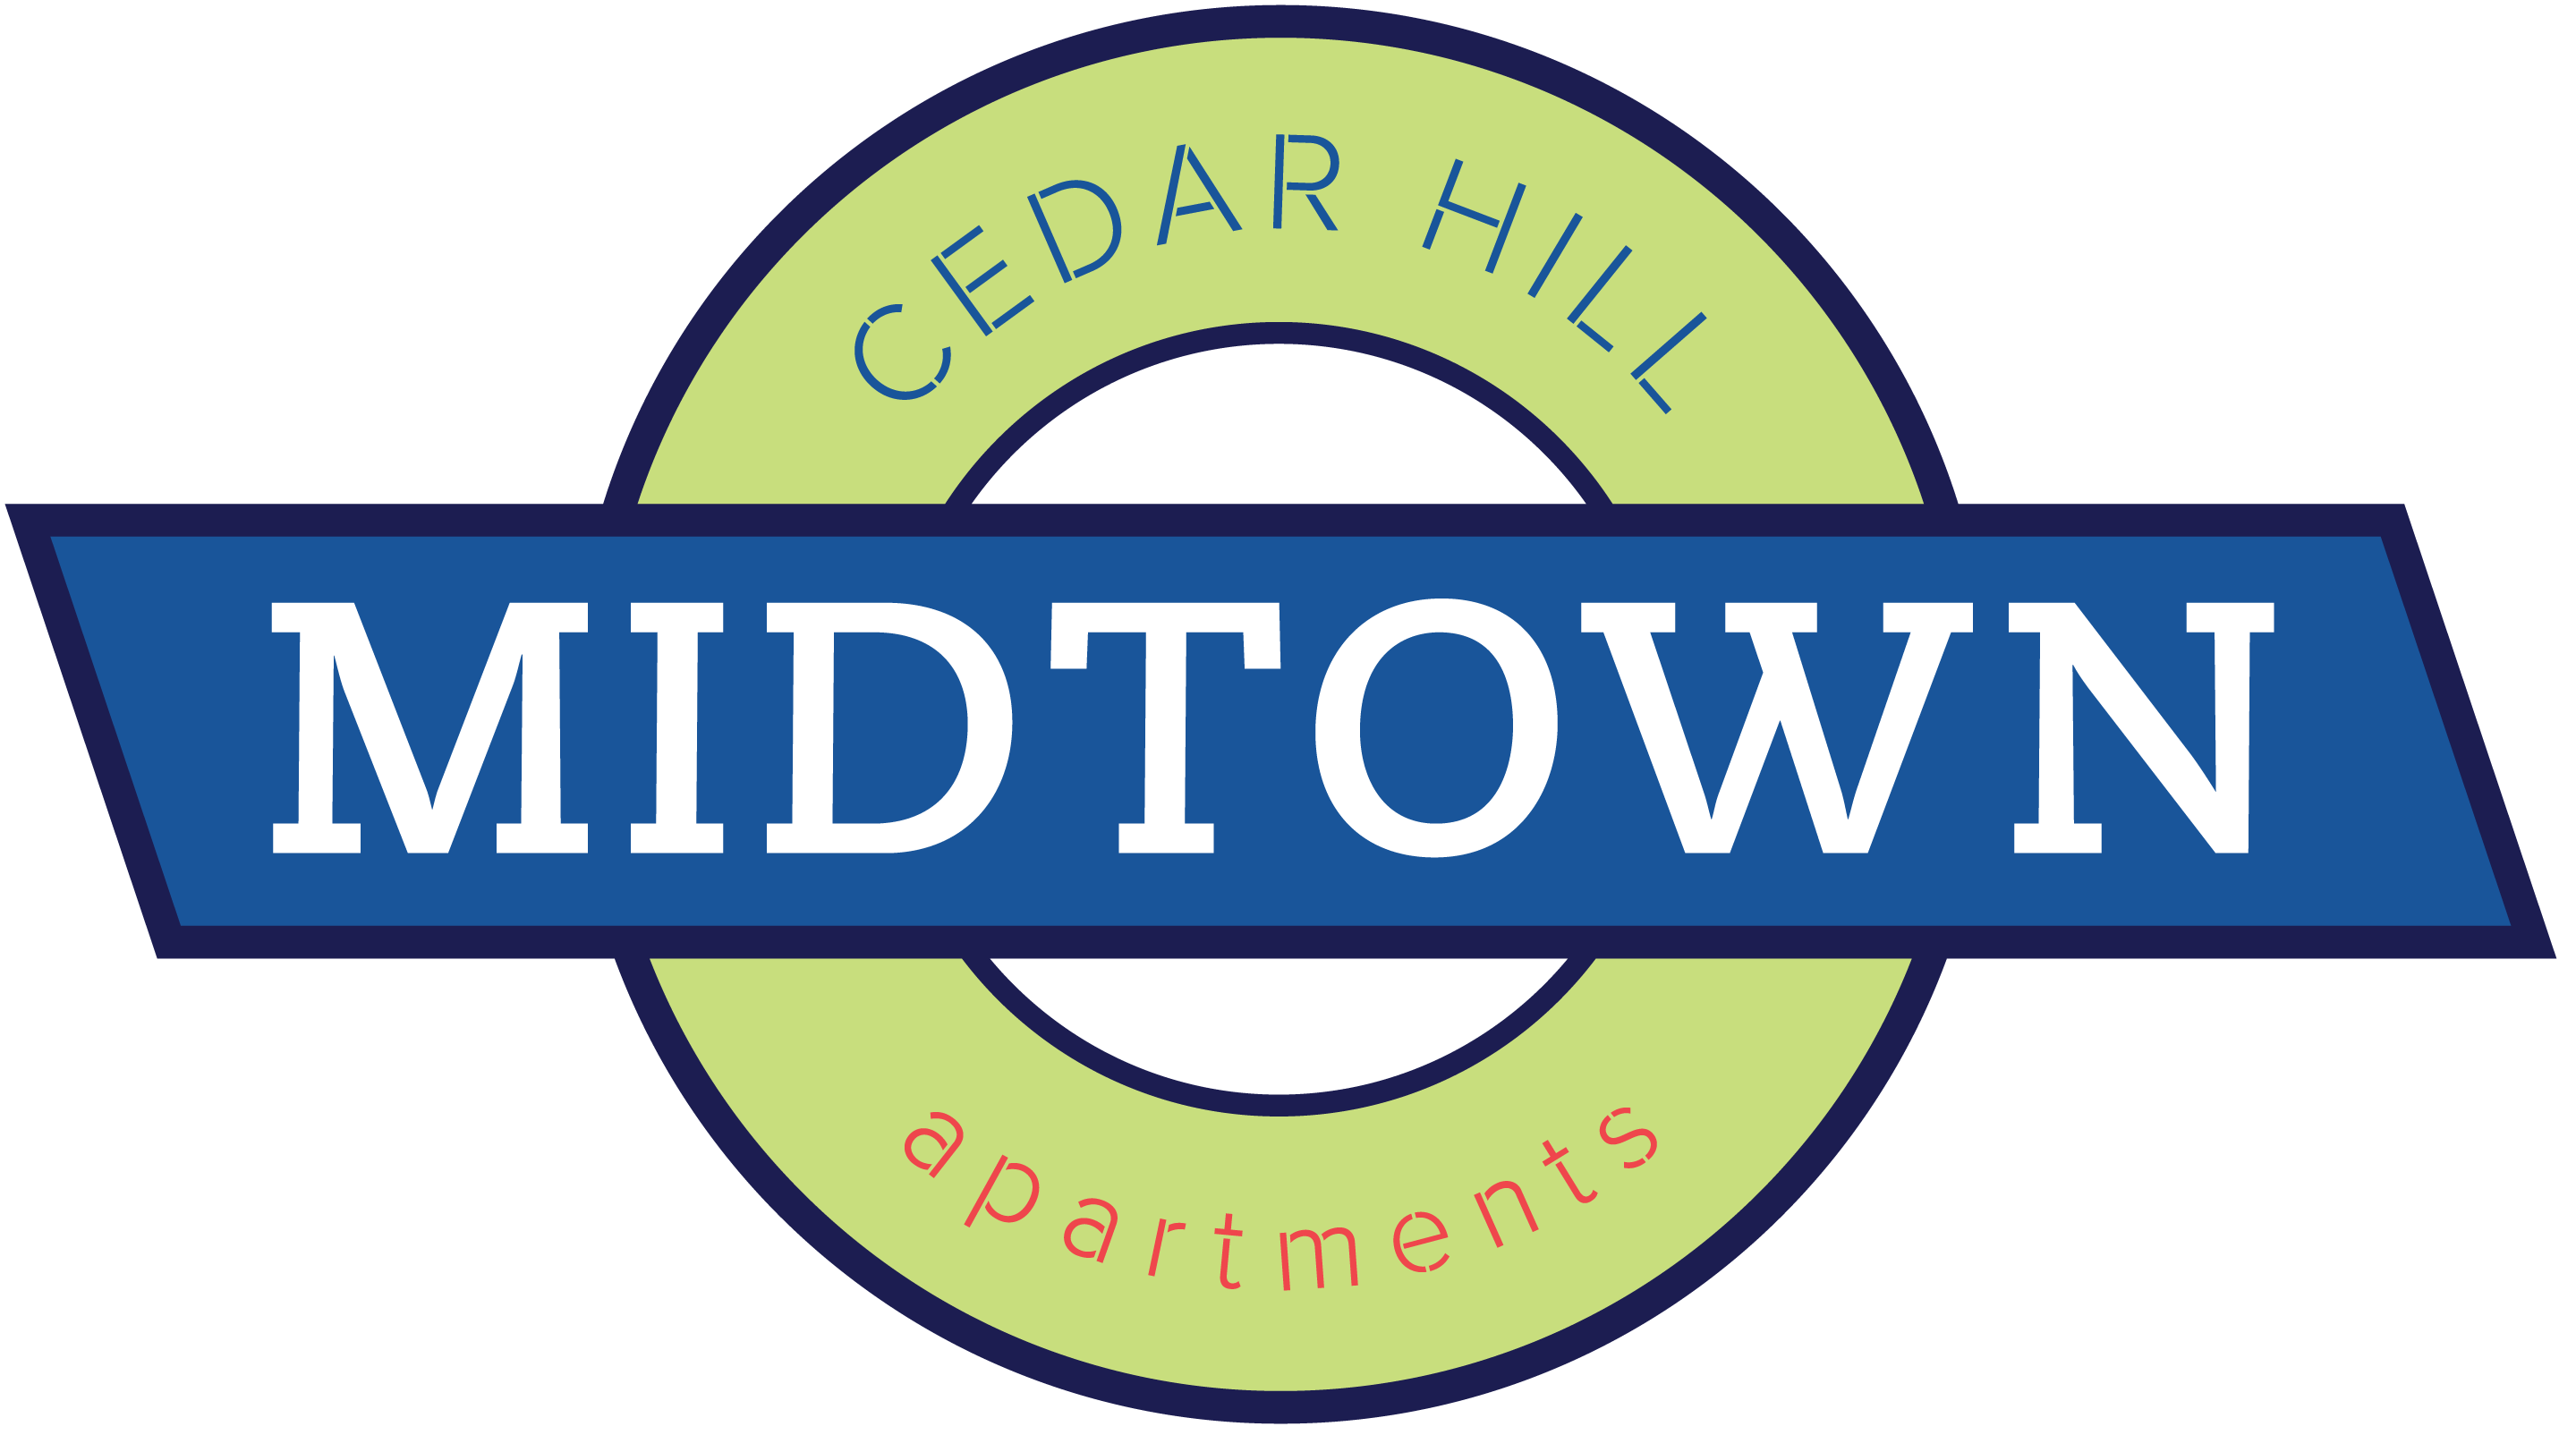 Midtown Cedar Hill Apartments Logo